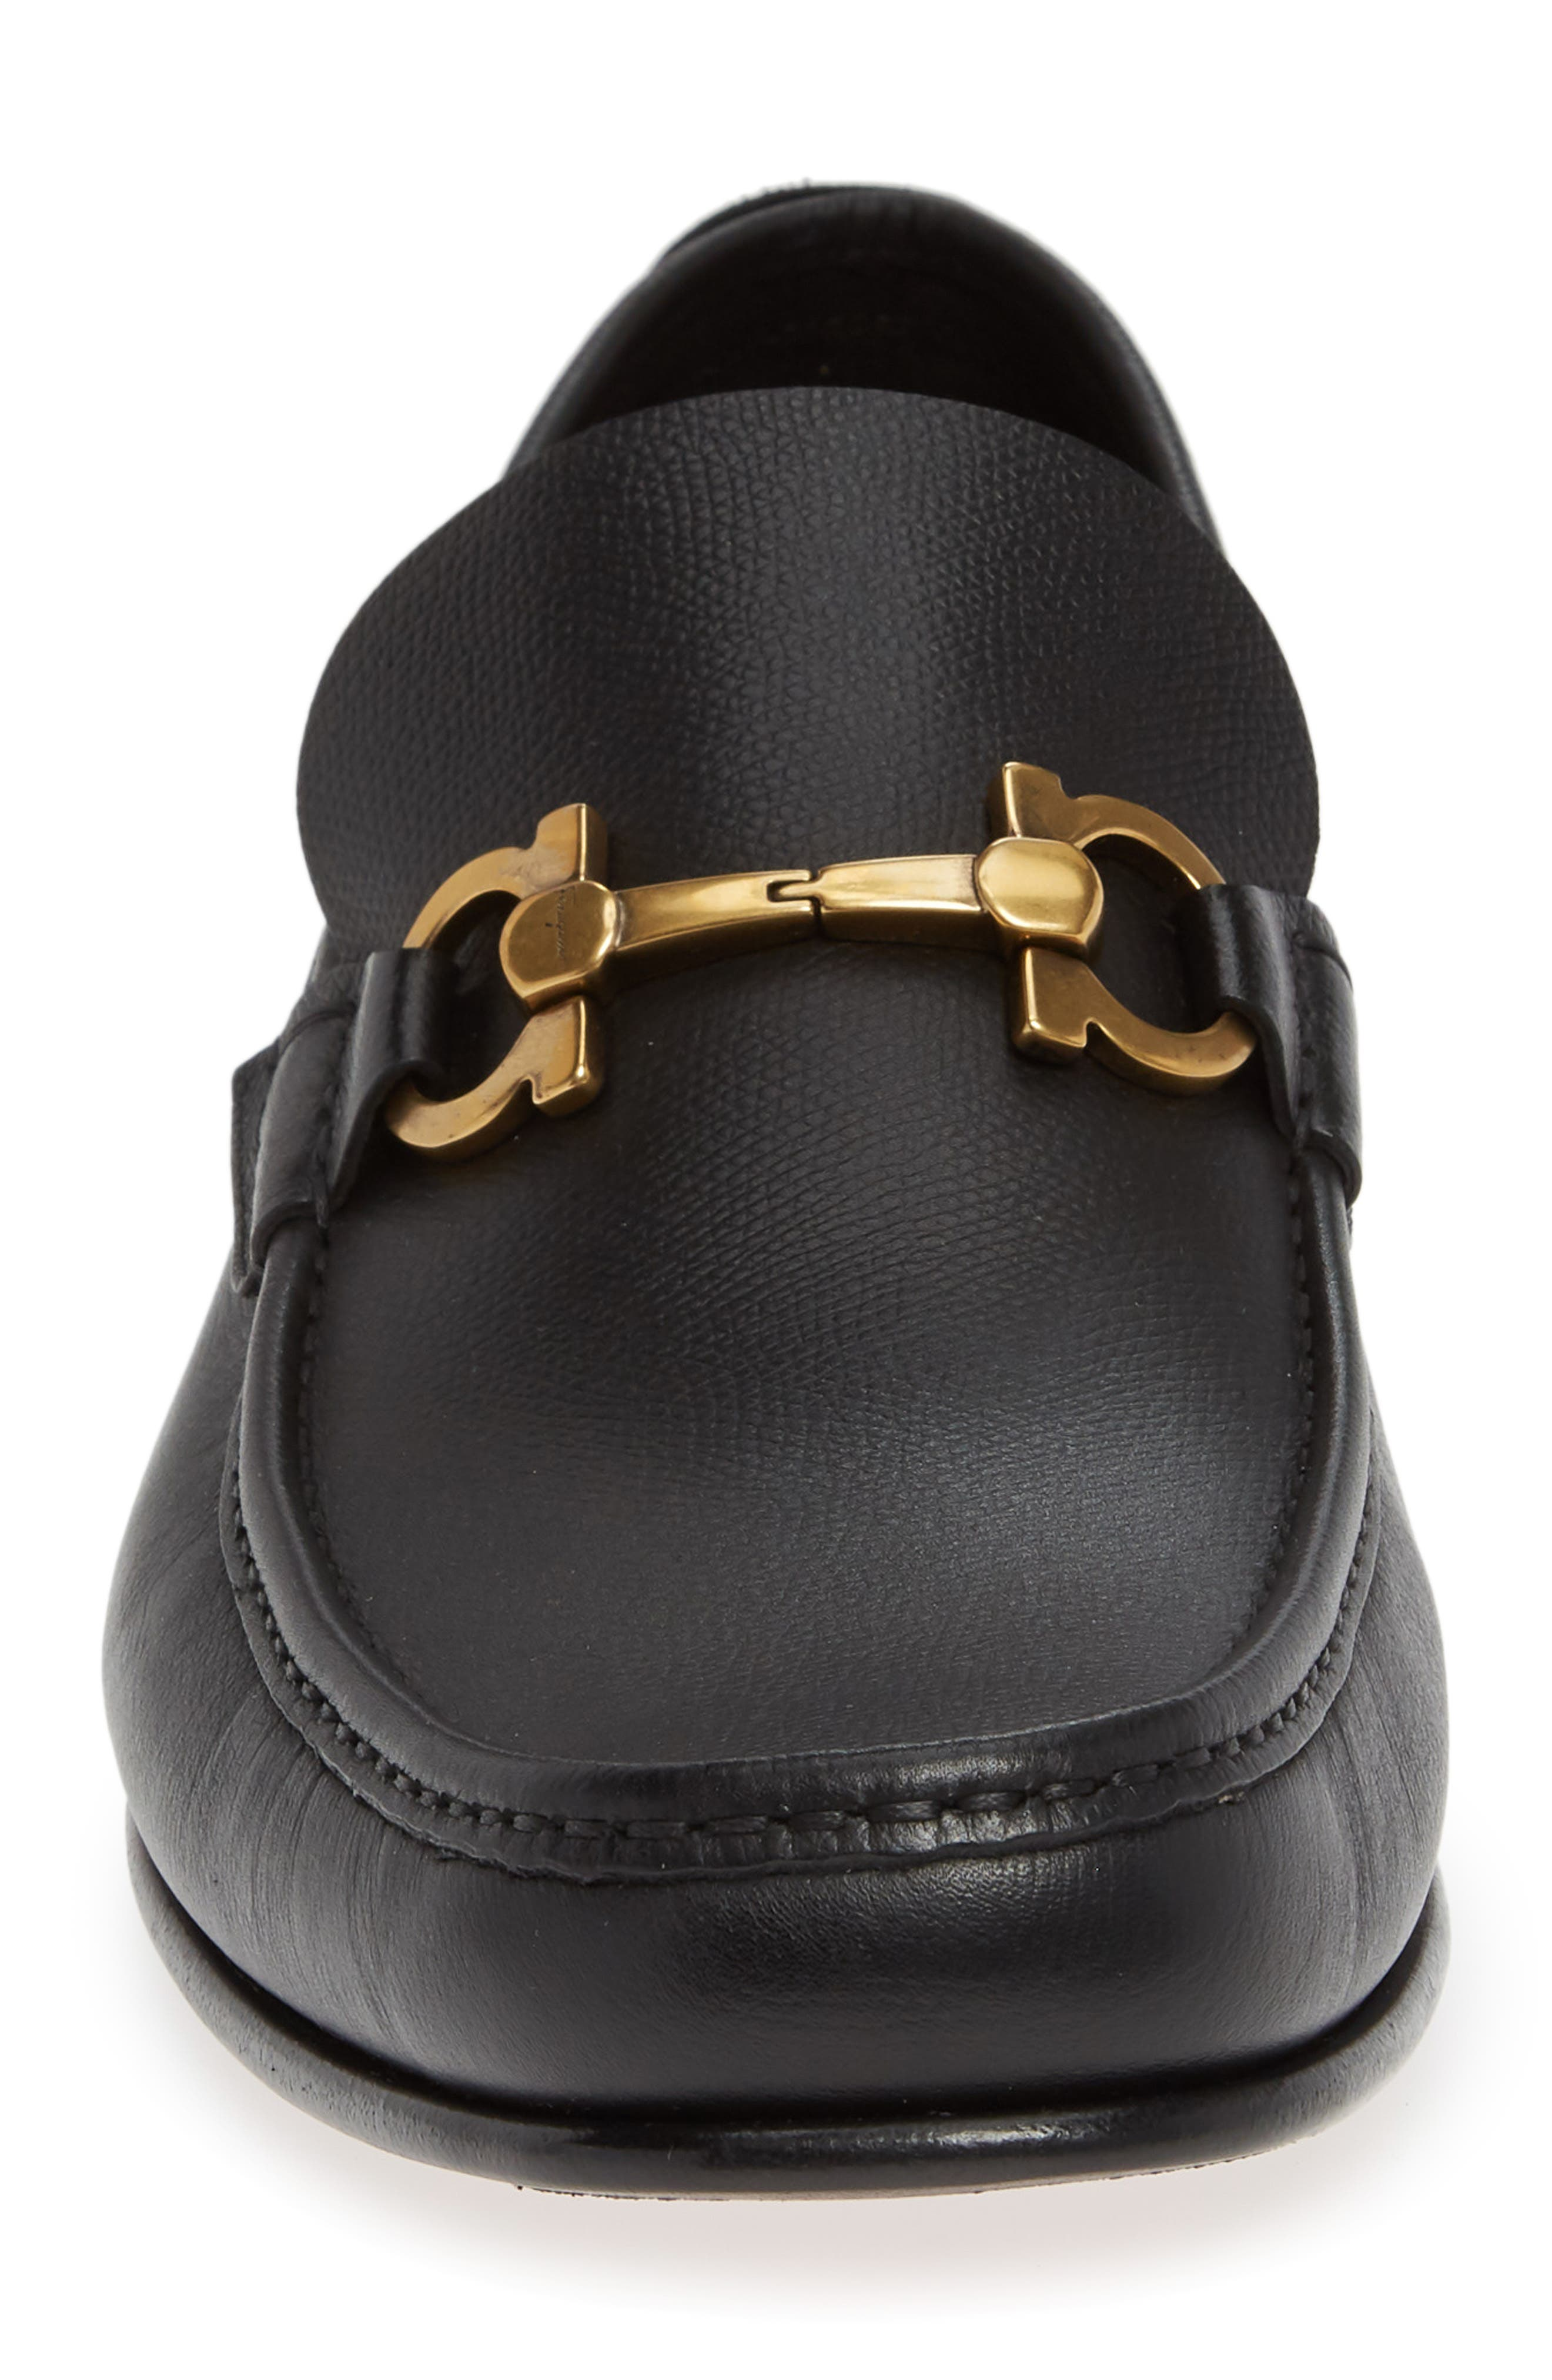 Fiordi Bit Loafer,                             Alternate thumbnail 4, color,                             NERO LEATHER